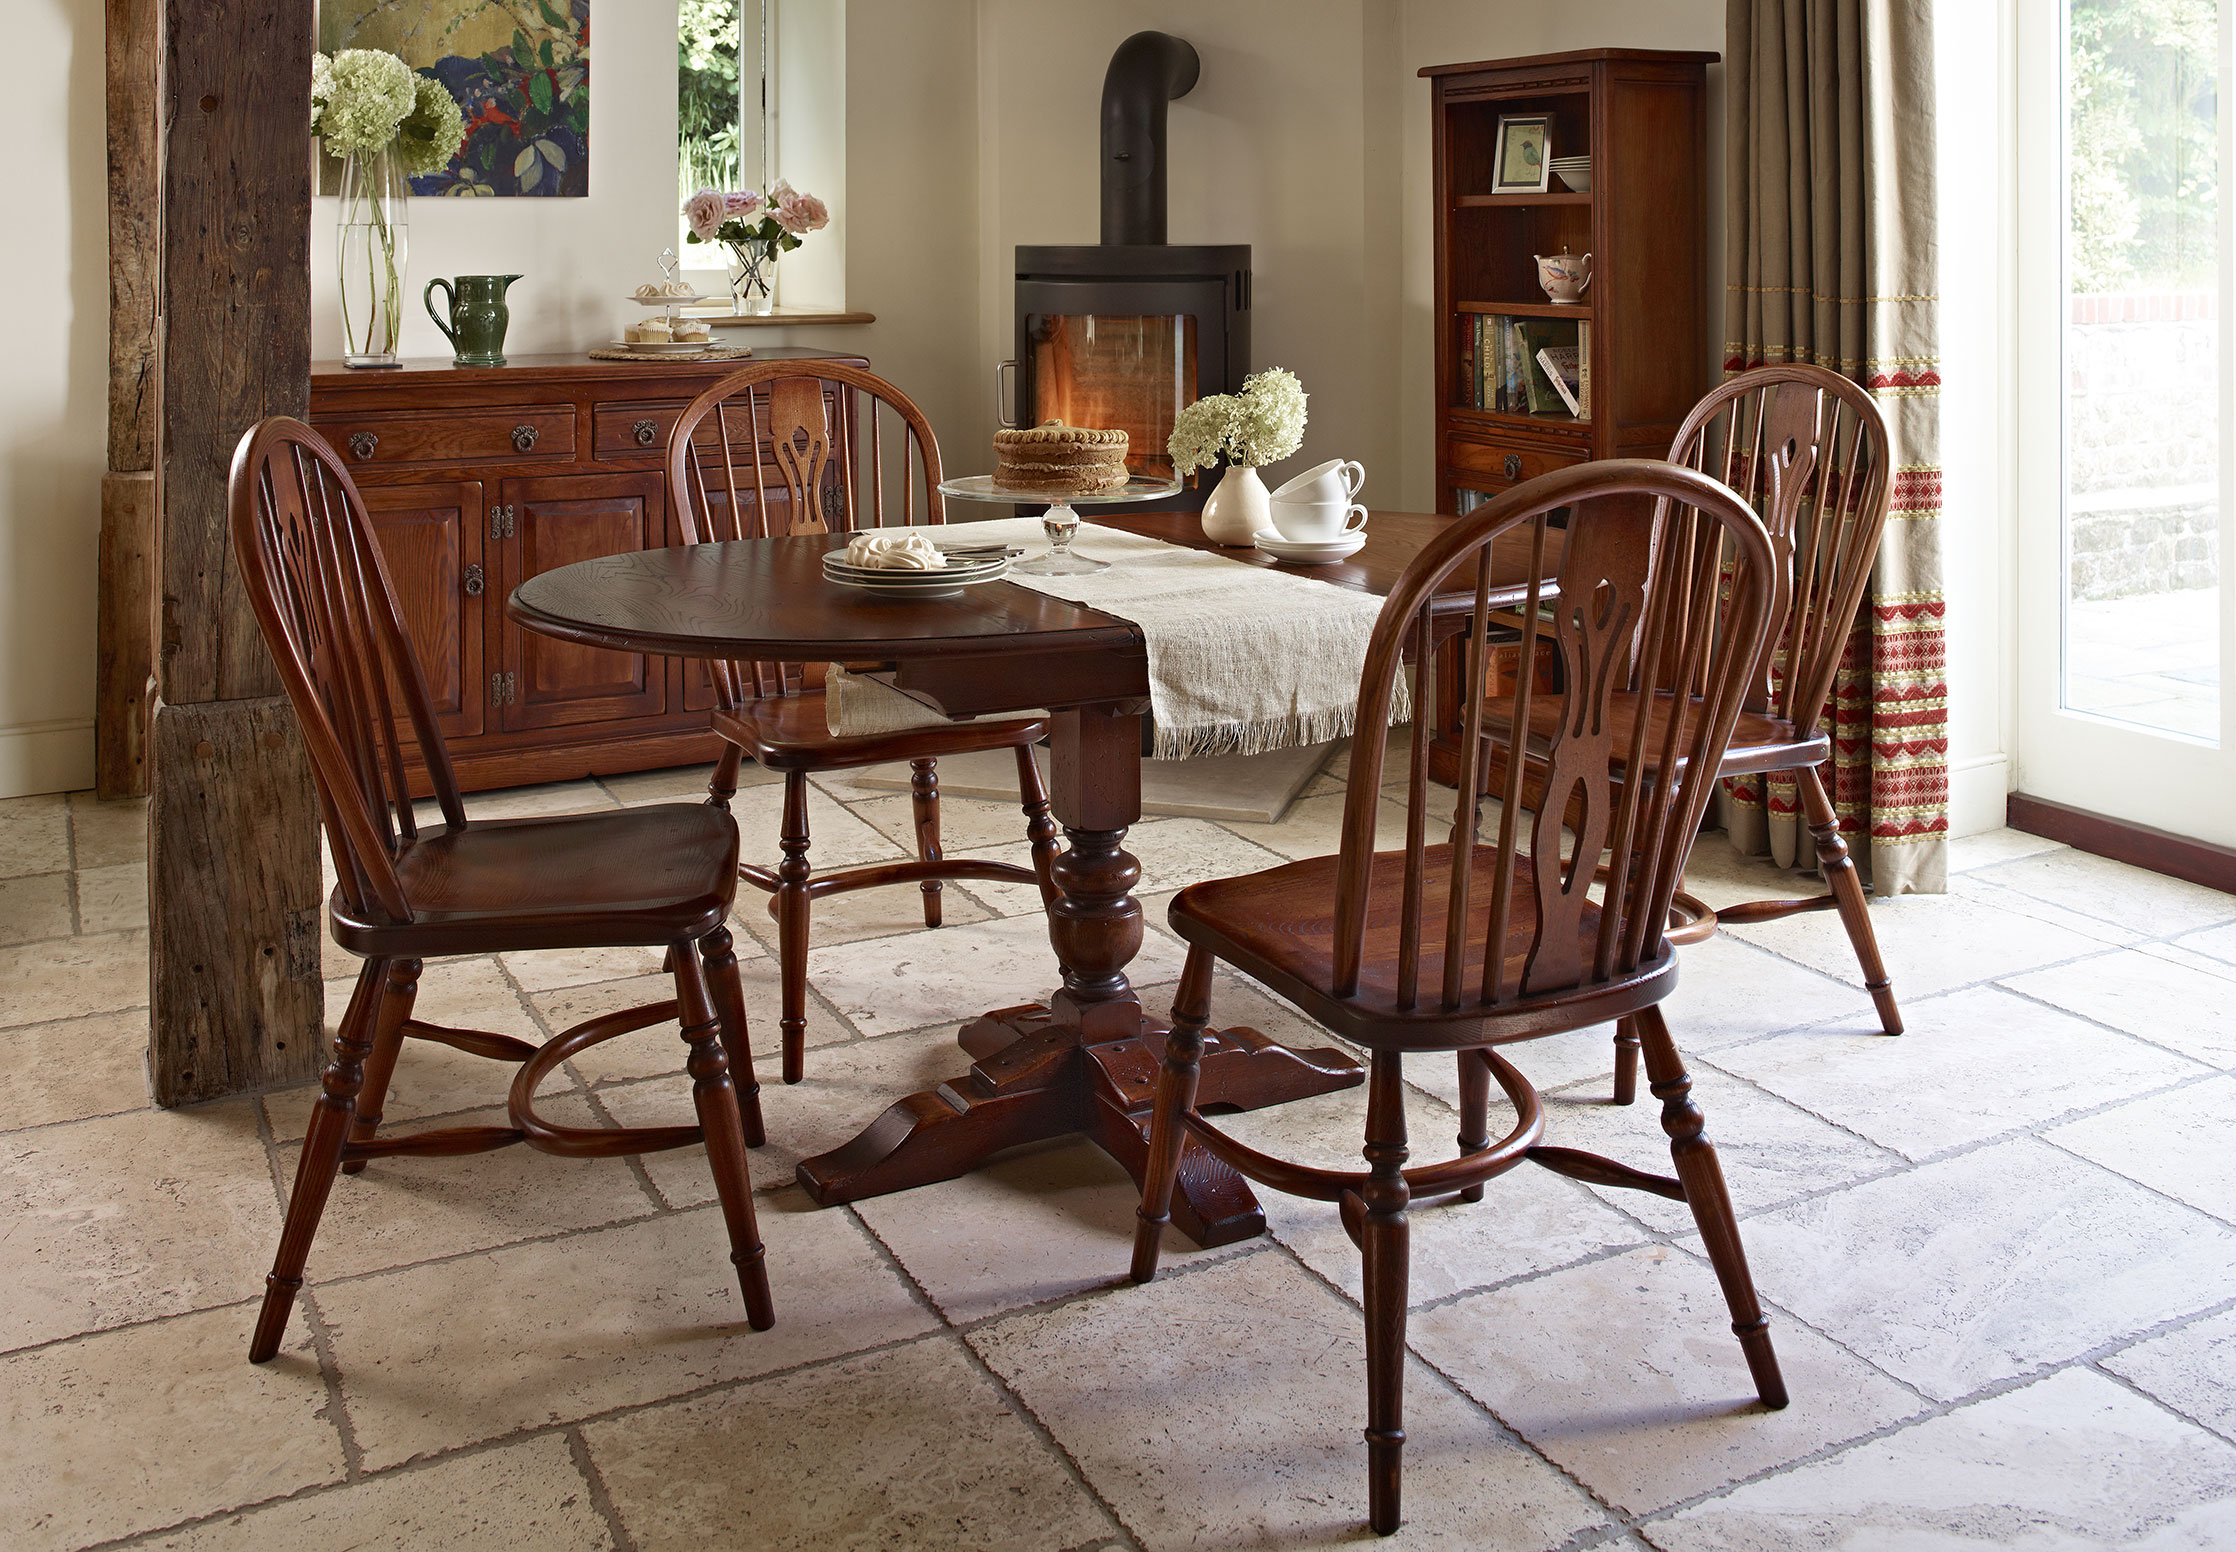 Grab some old charm furniture